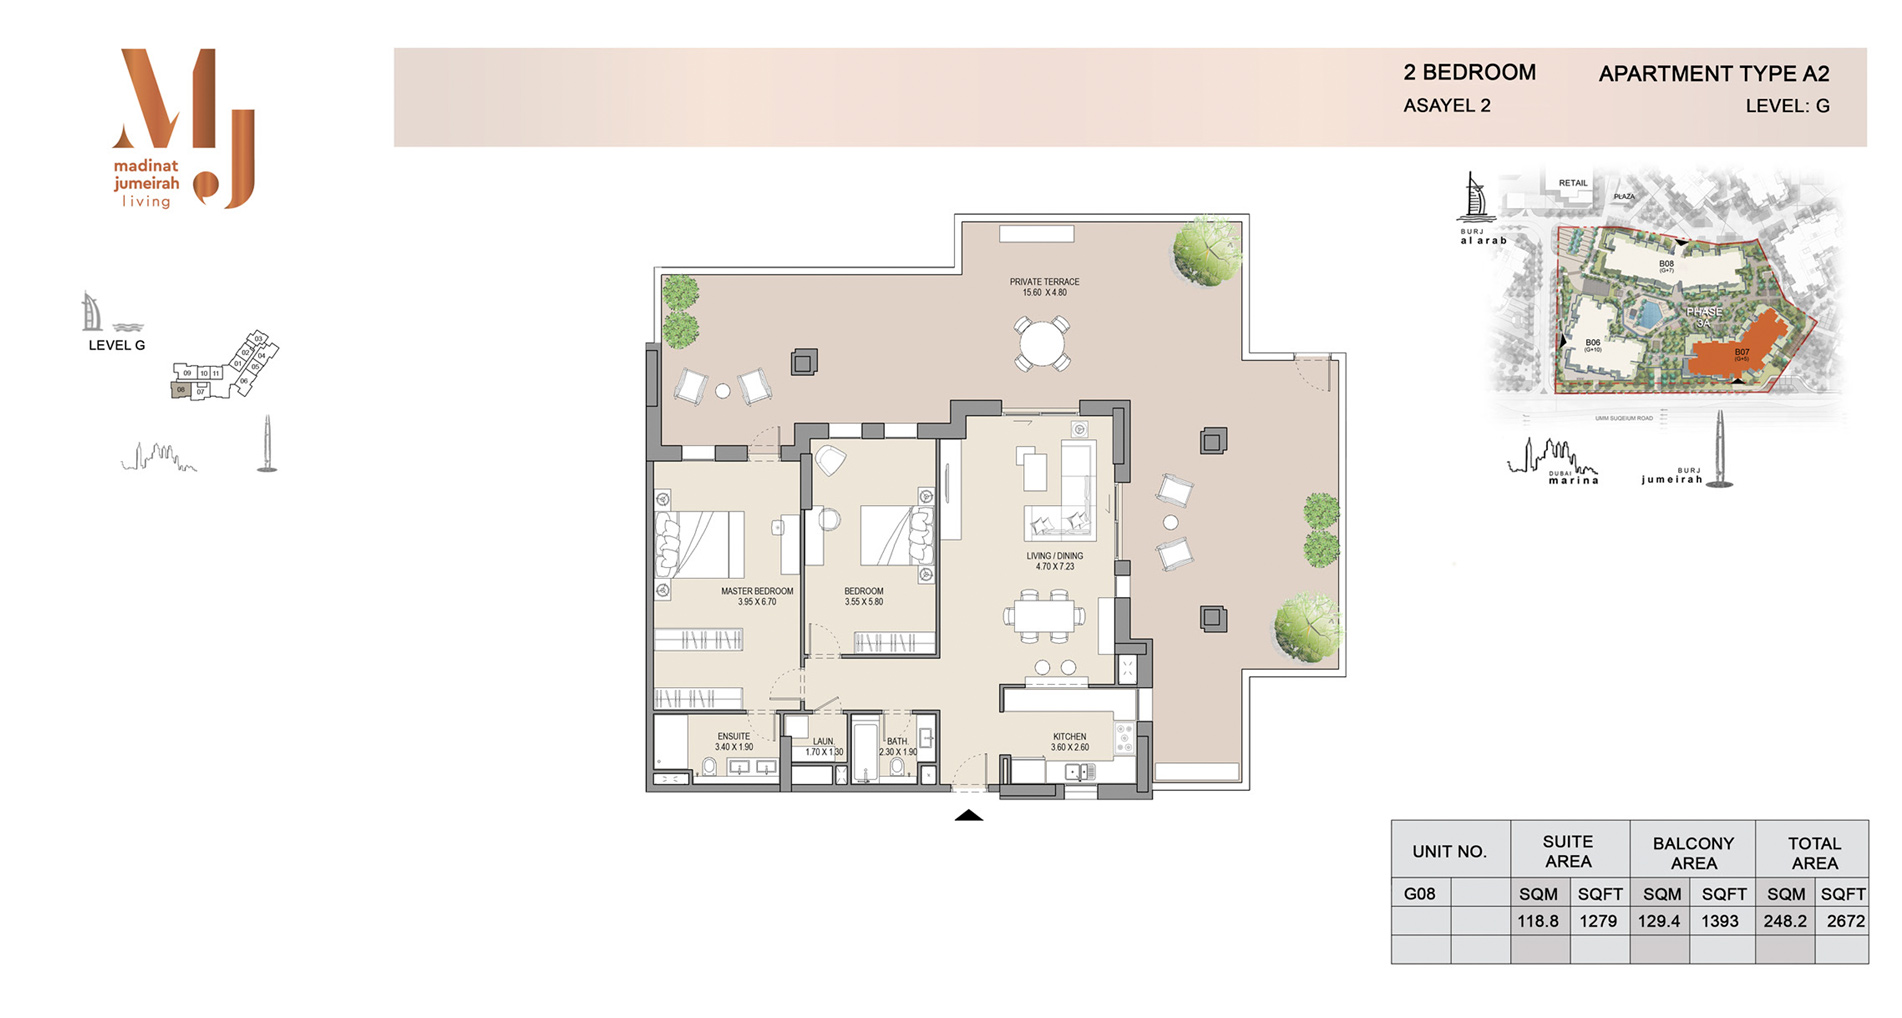 Building 2, 2 Bed Type A2 Level G, Size 2672    sq. ft.